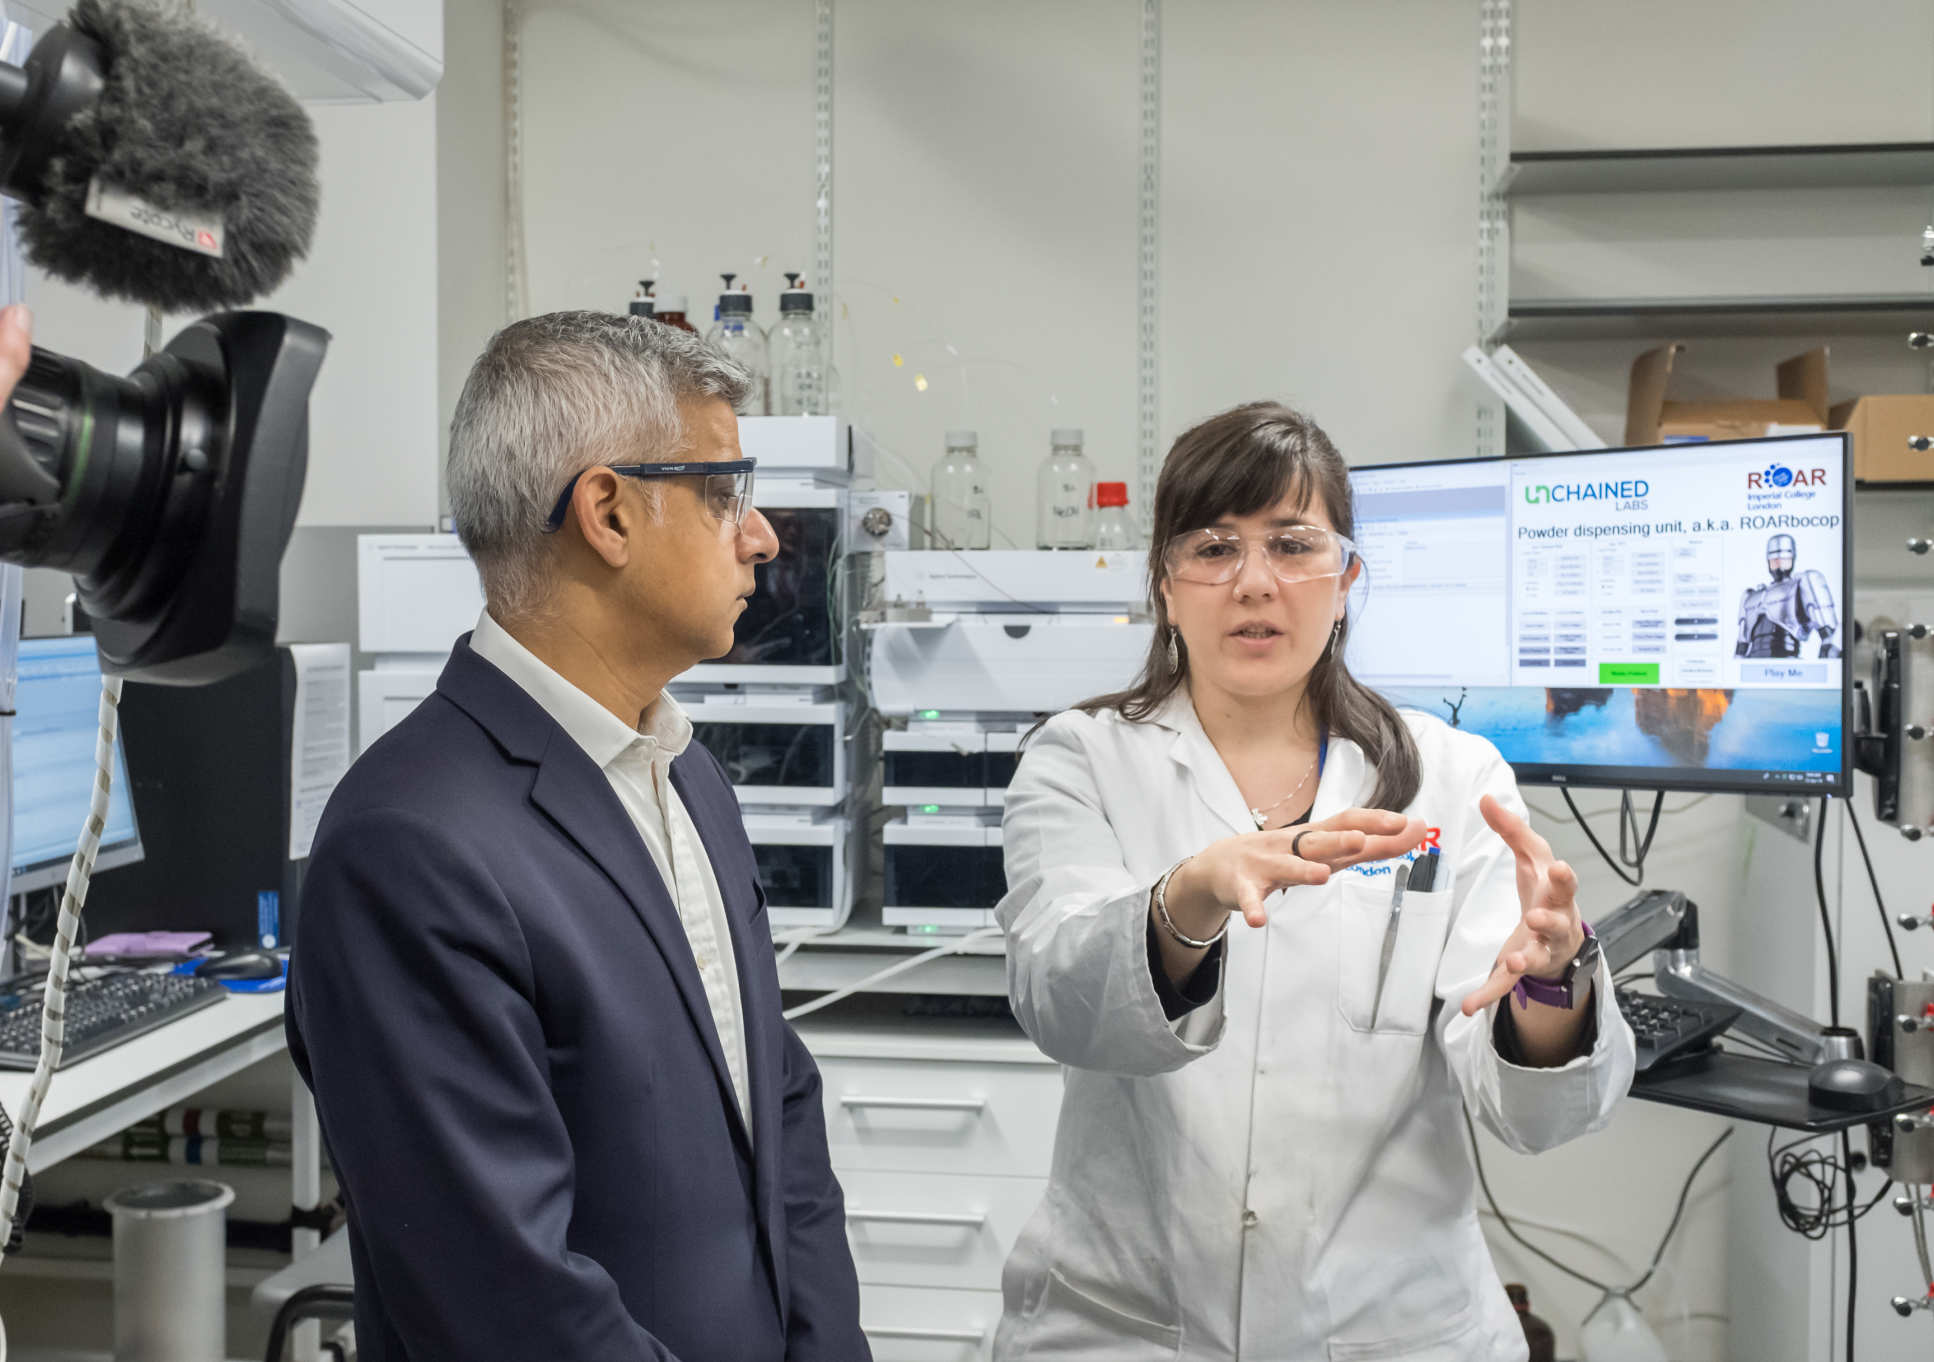 Mayor Sadiq Khan in the ROAR research facility